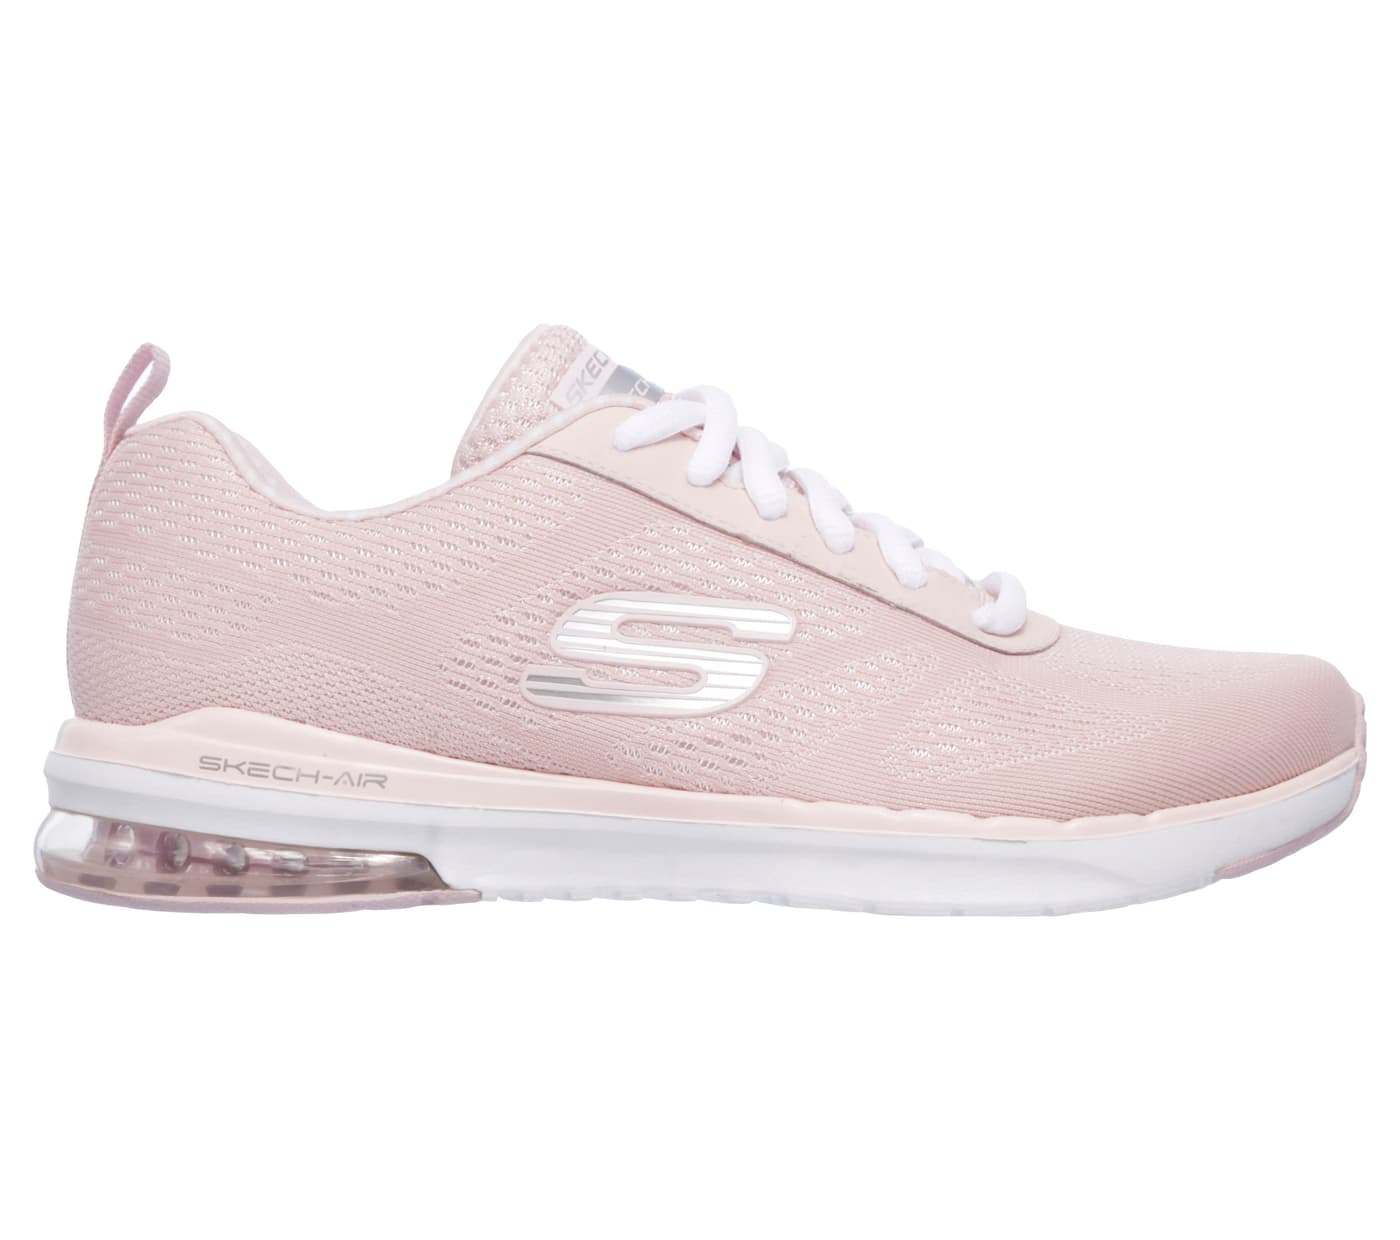 Infinity Femme Pour Skech Loisirs Chaussures De Skechers Migros Air aqpEwYxP0